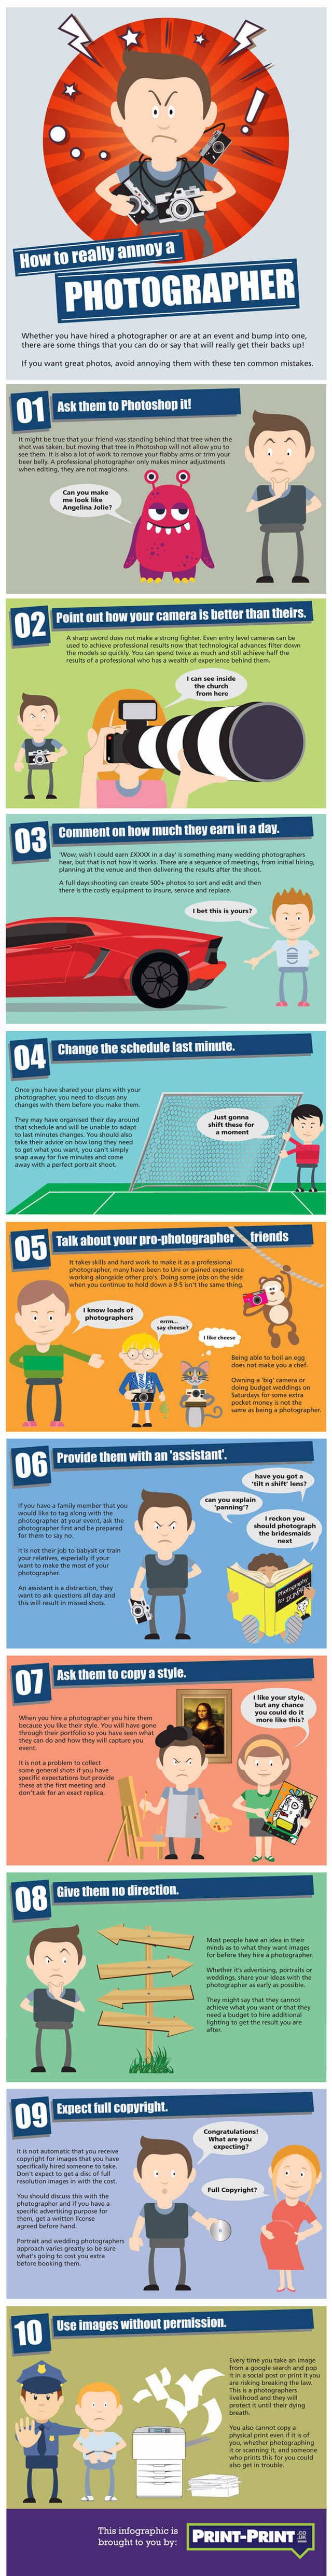 How to annoy a photographer infographic